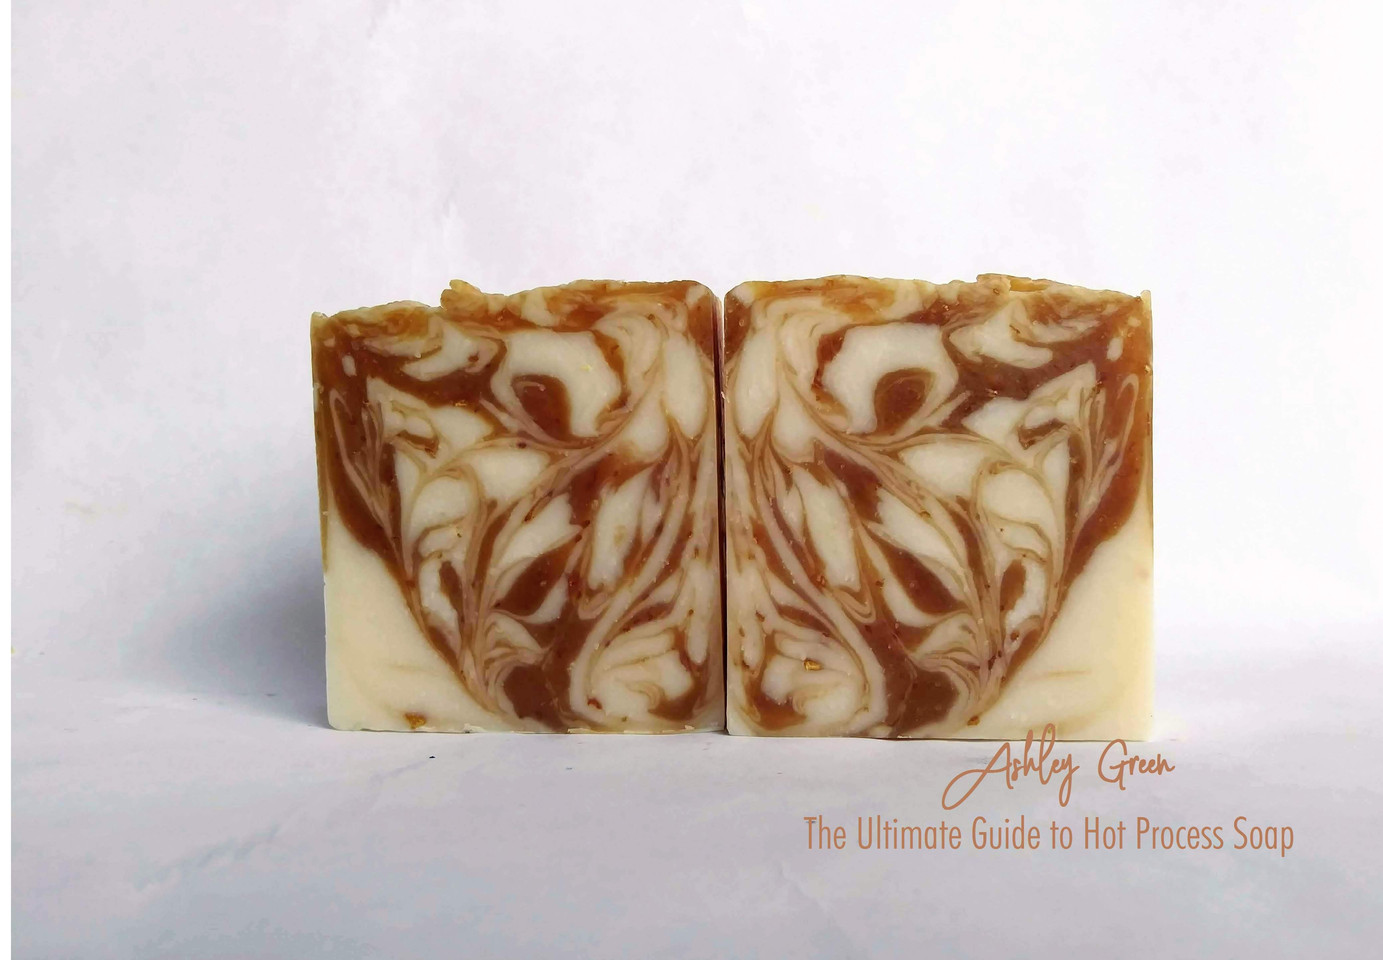 The Ultimate Guide to Hot Process Soap-H